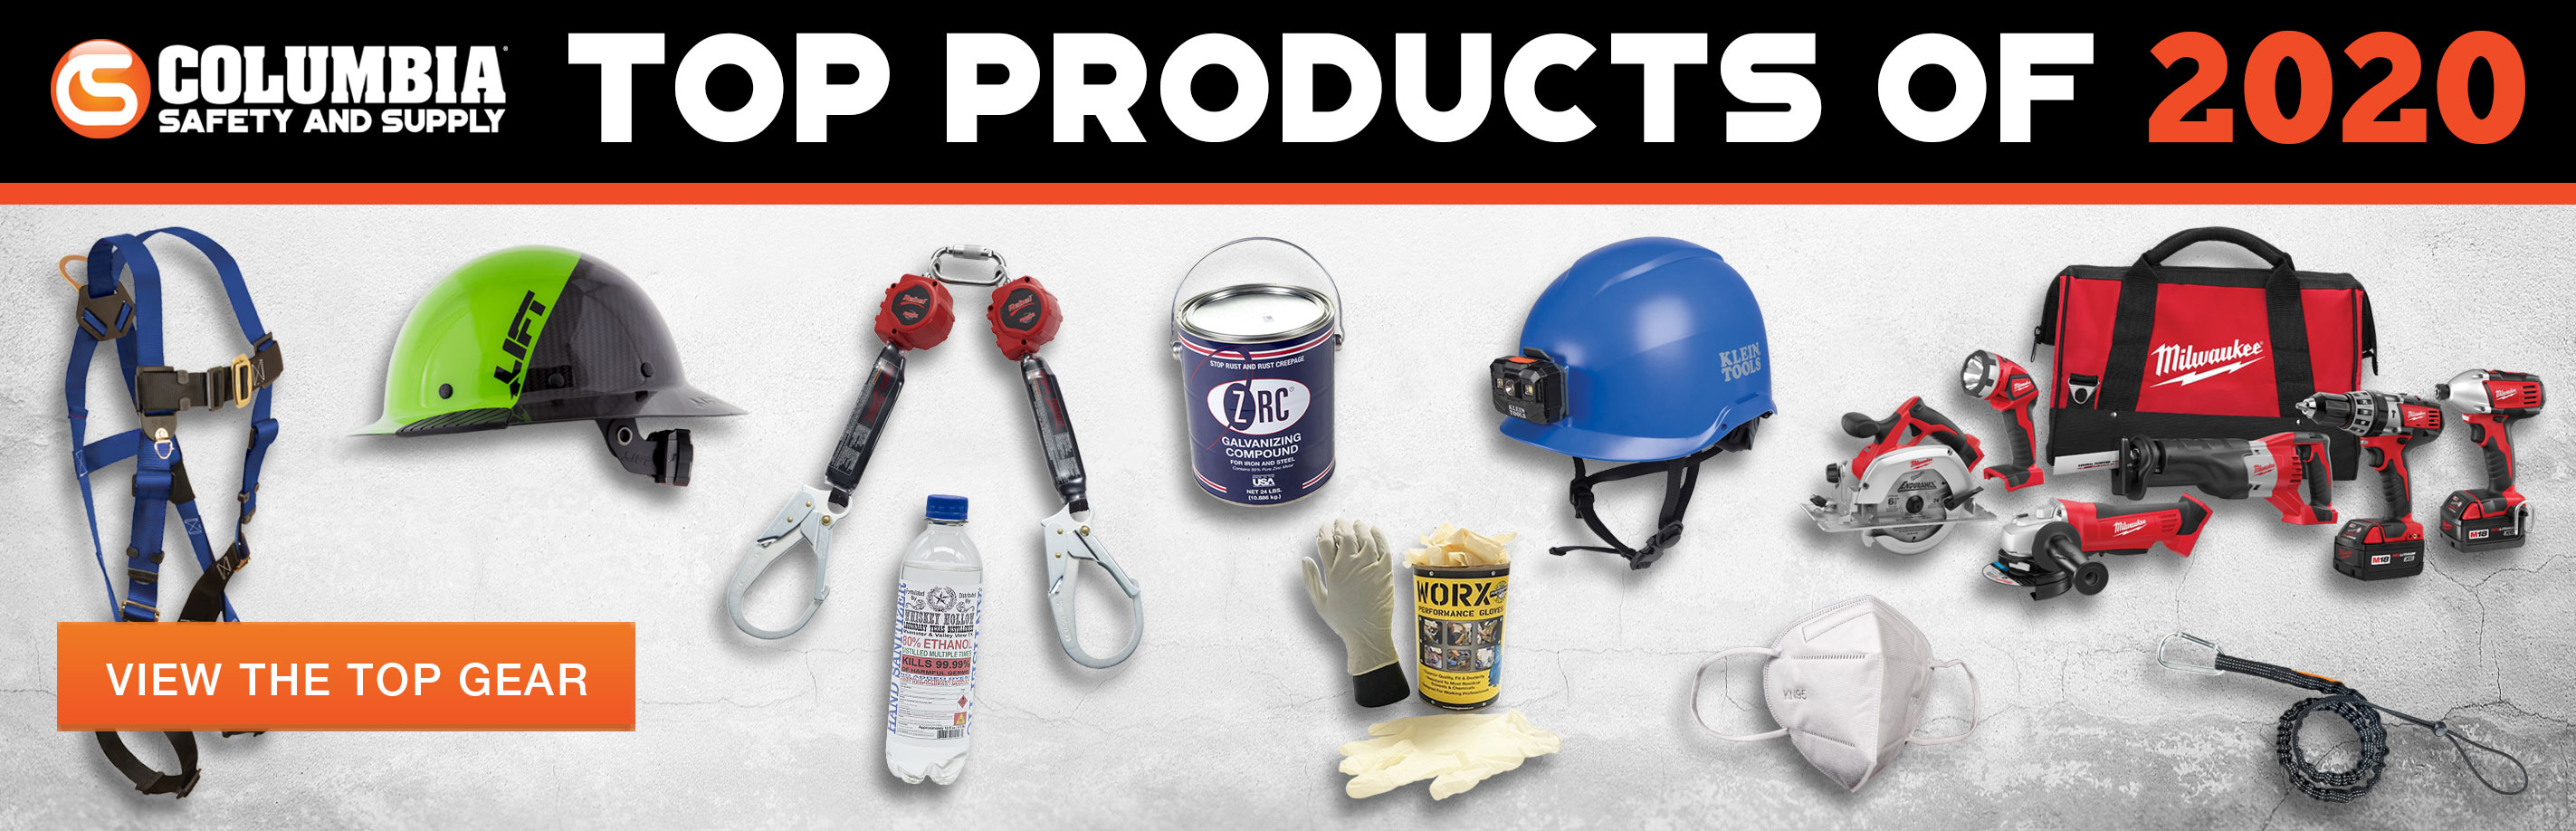 View our hand-picked holiday gifts from Columbia Safety and Supply